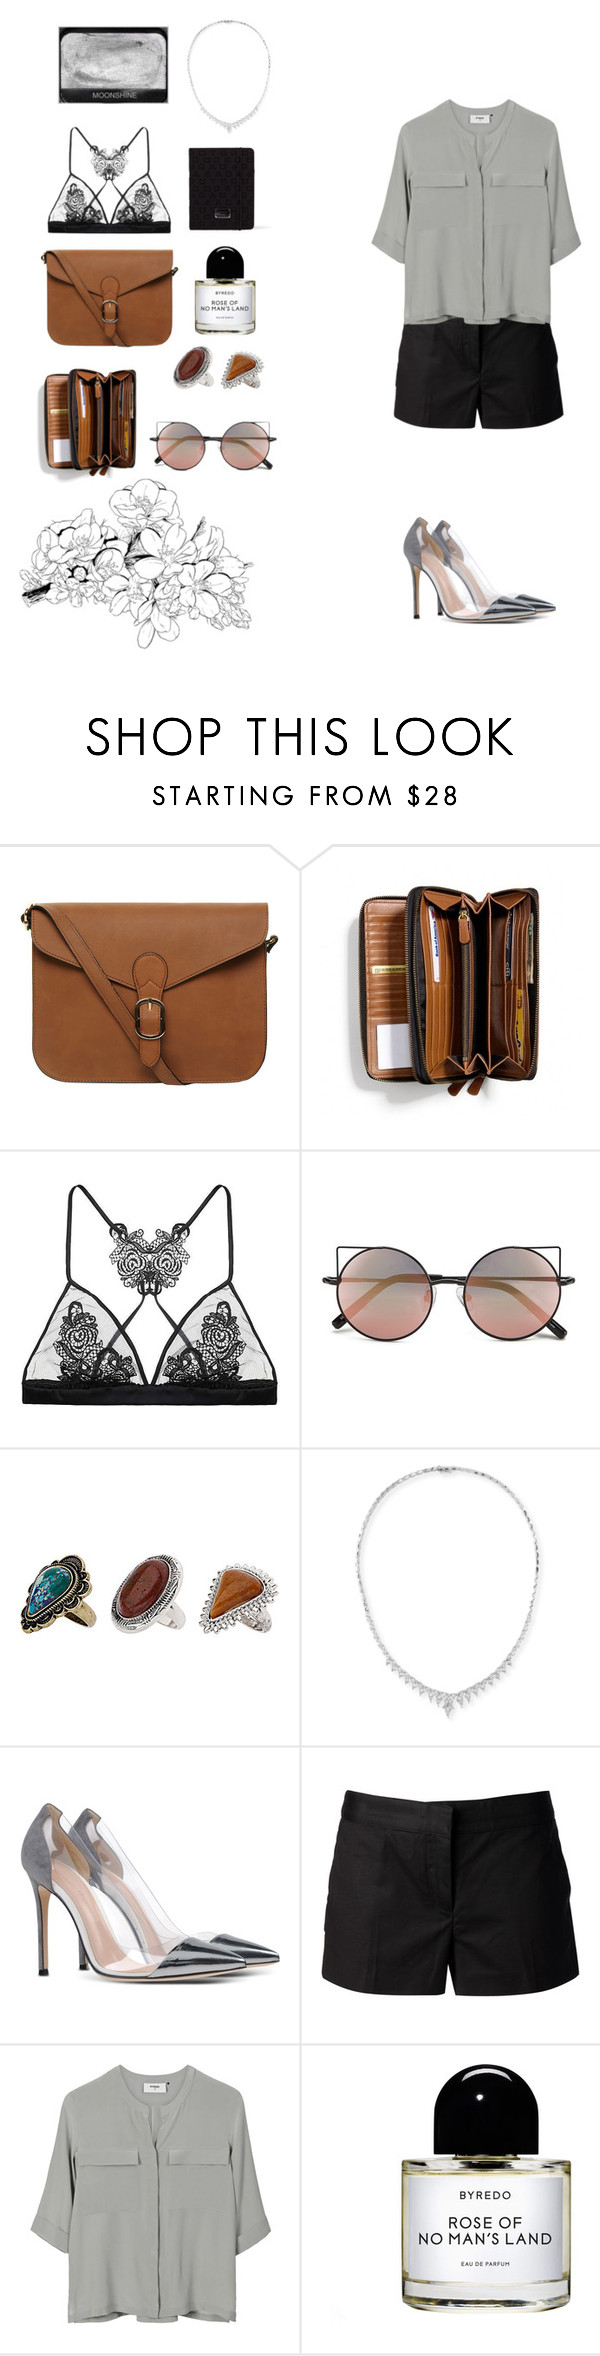 """""""Moonshine"""" by mona-sml ❤ liked on Polyvore featuring Dorothy Perkins, Coach, Fleur of England, Linda Farrow, Topshop, Stephen Webster, Gianvito Rossi, MICHAEL Michael Kors, PYRUS and Byredo"""